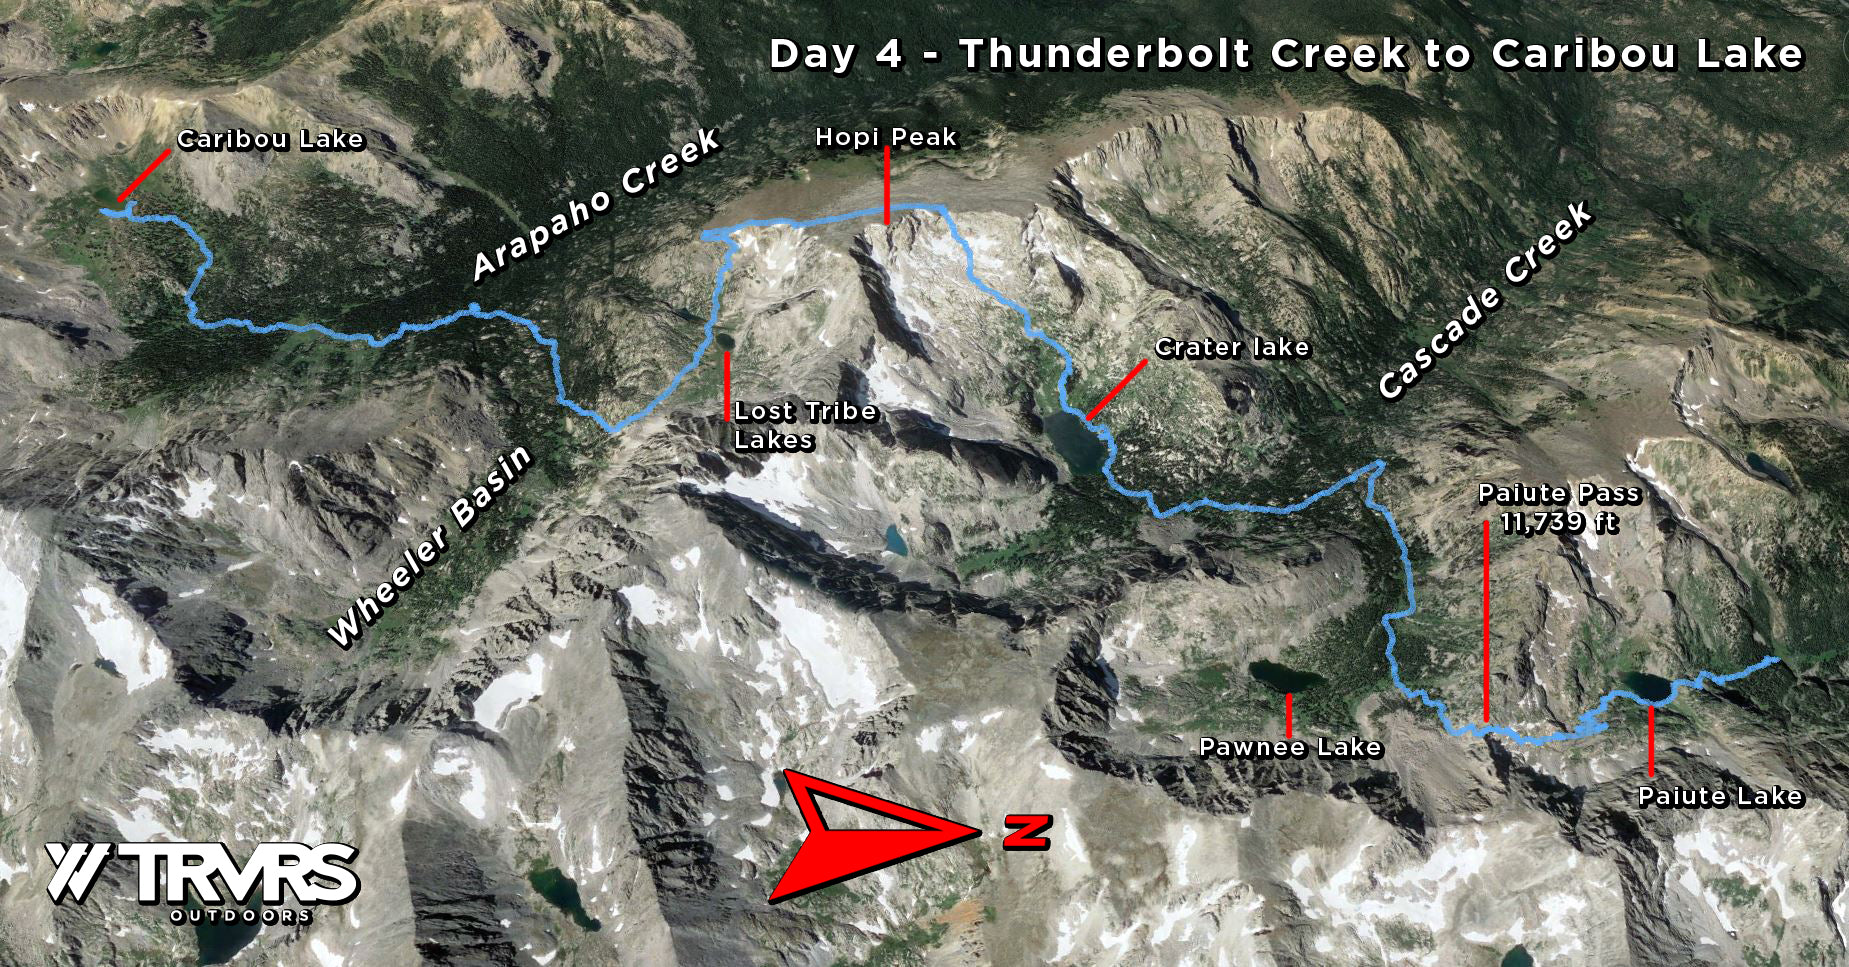 Day 4, Thunderbolt Creek to Caribou Lake - Pfiffner Traverse, Indian Peaks Wilderness, Arapaho National Forest, Colorado Backpacking, Thru Hiking | TRVRS Outdoors